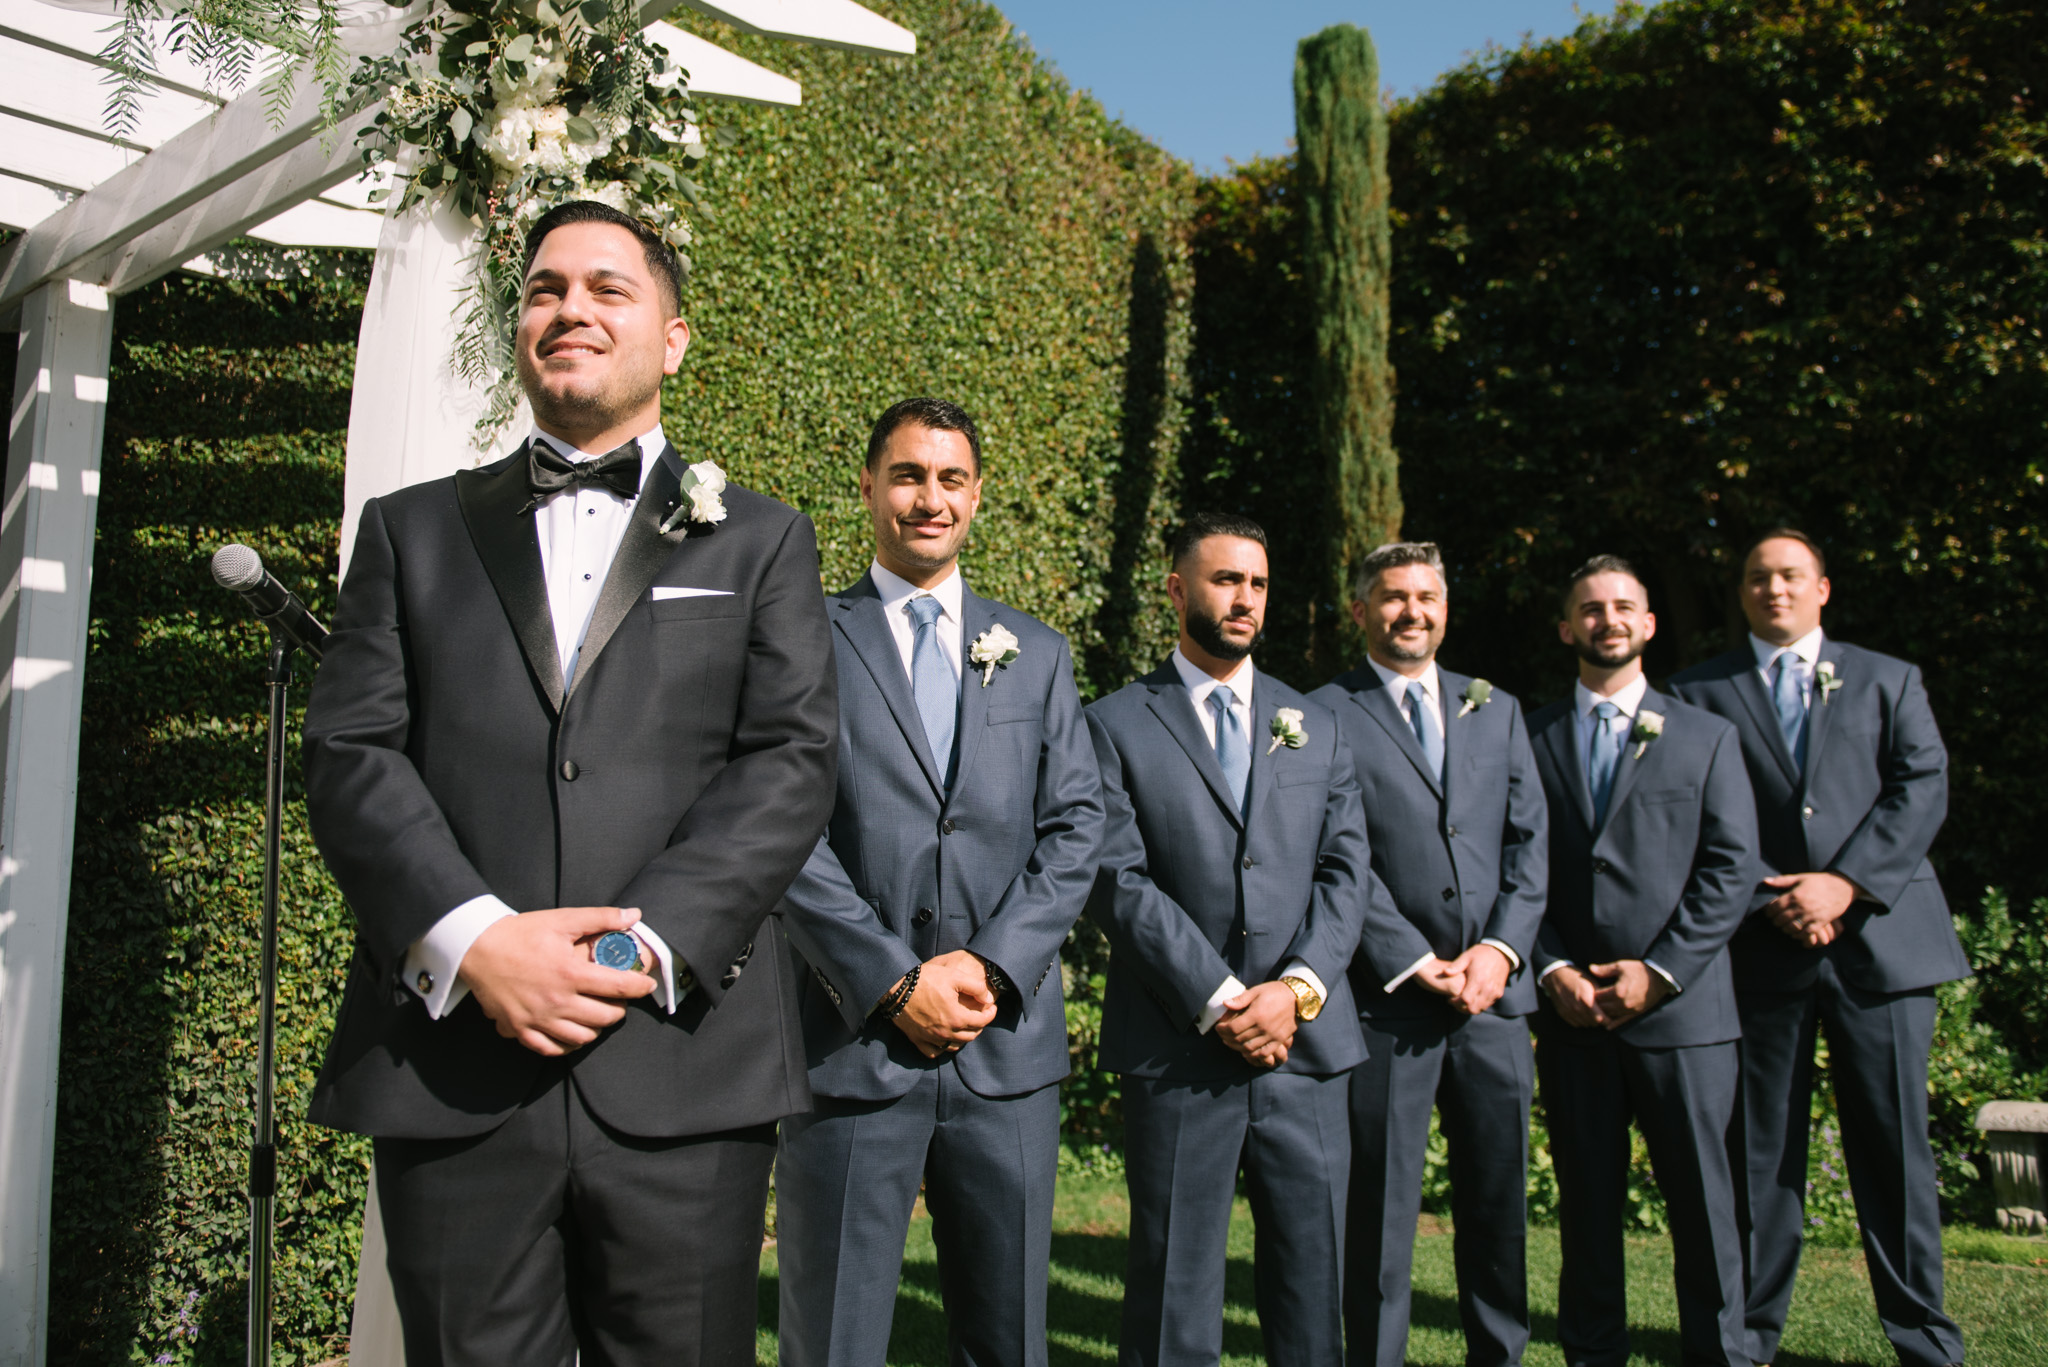 0235-JM-Altadena-Town-And-Country-Club-Los-Angeles-County-Wedding-Photography.jpg